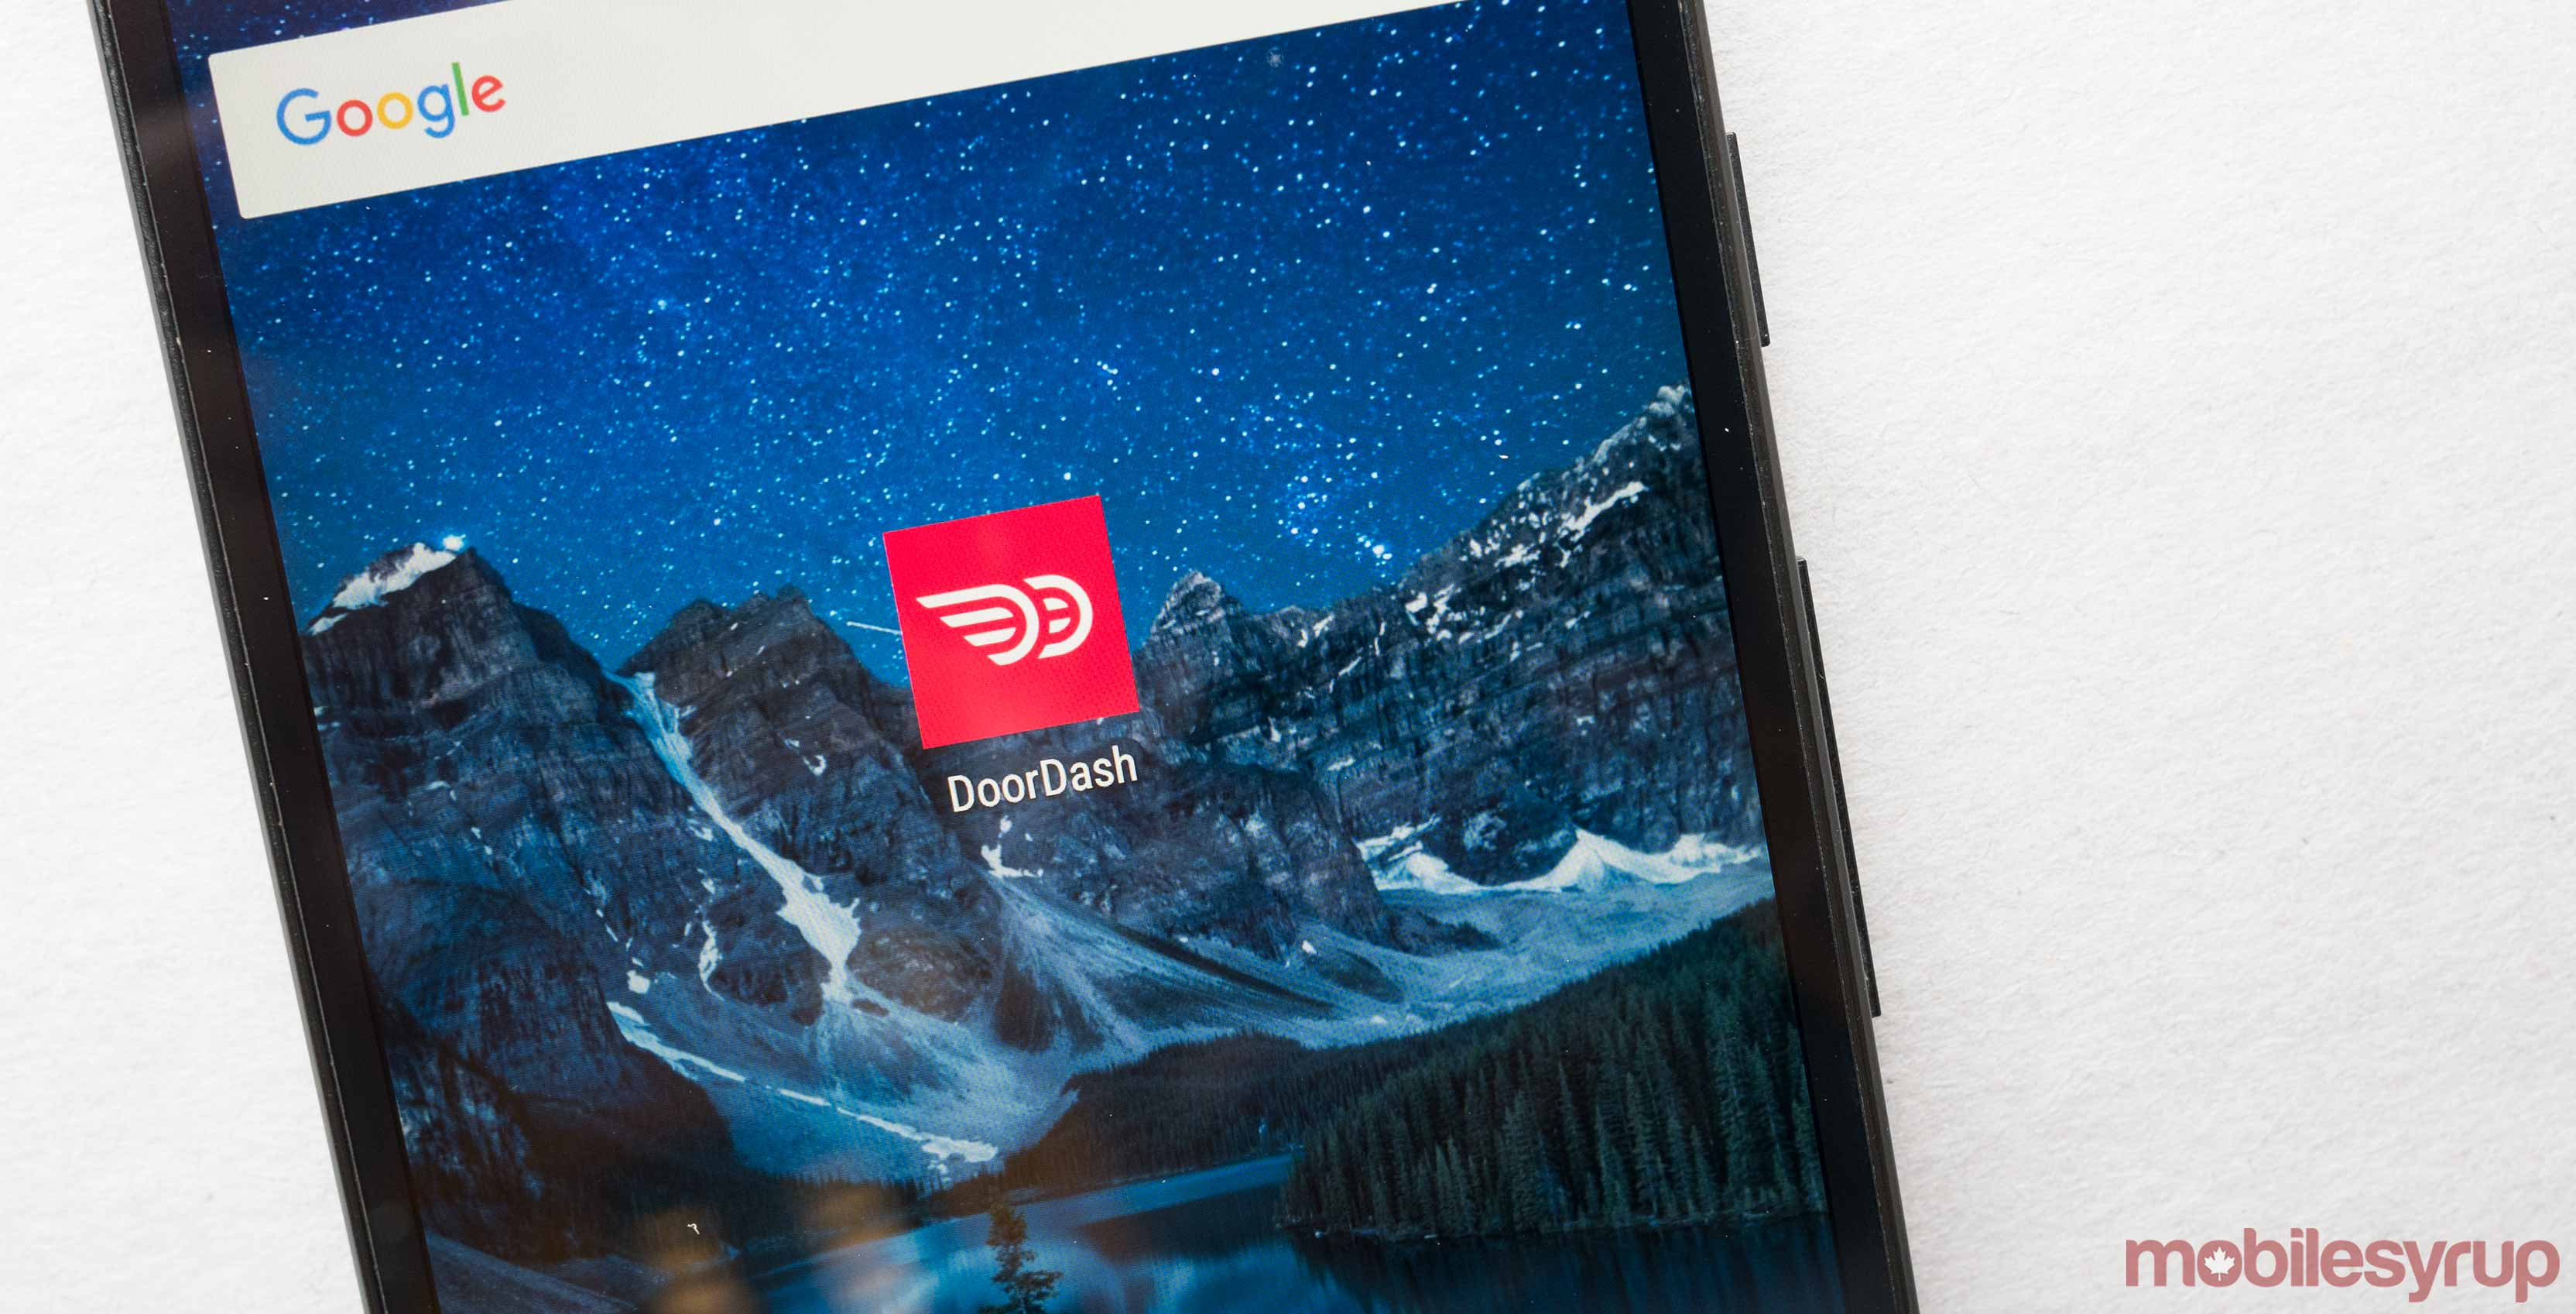 DoorDash Android app